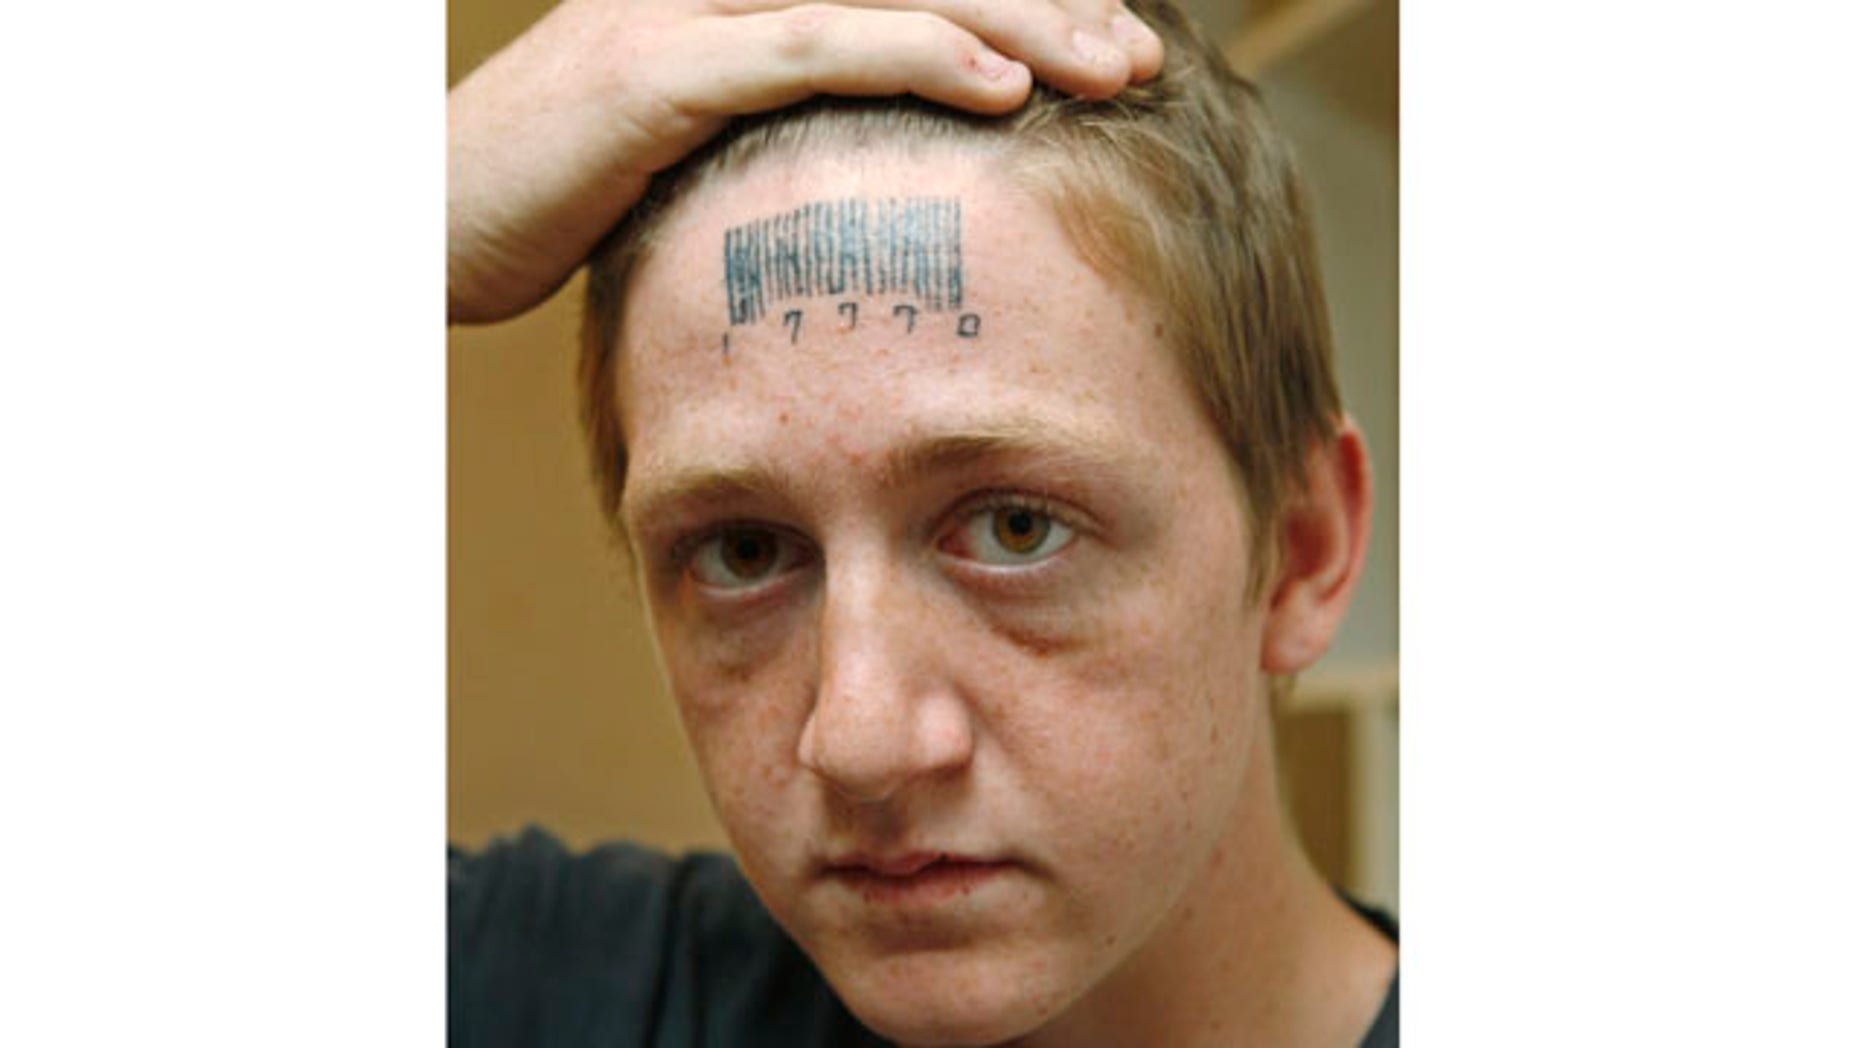 May 4: Stetson Johnson, 18, holds back his hair to show a tattoo on his forehead in his home in Oklahoma City.